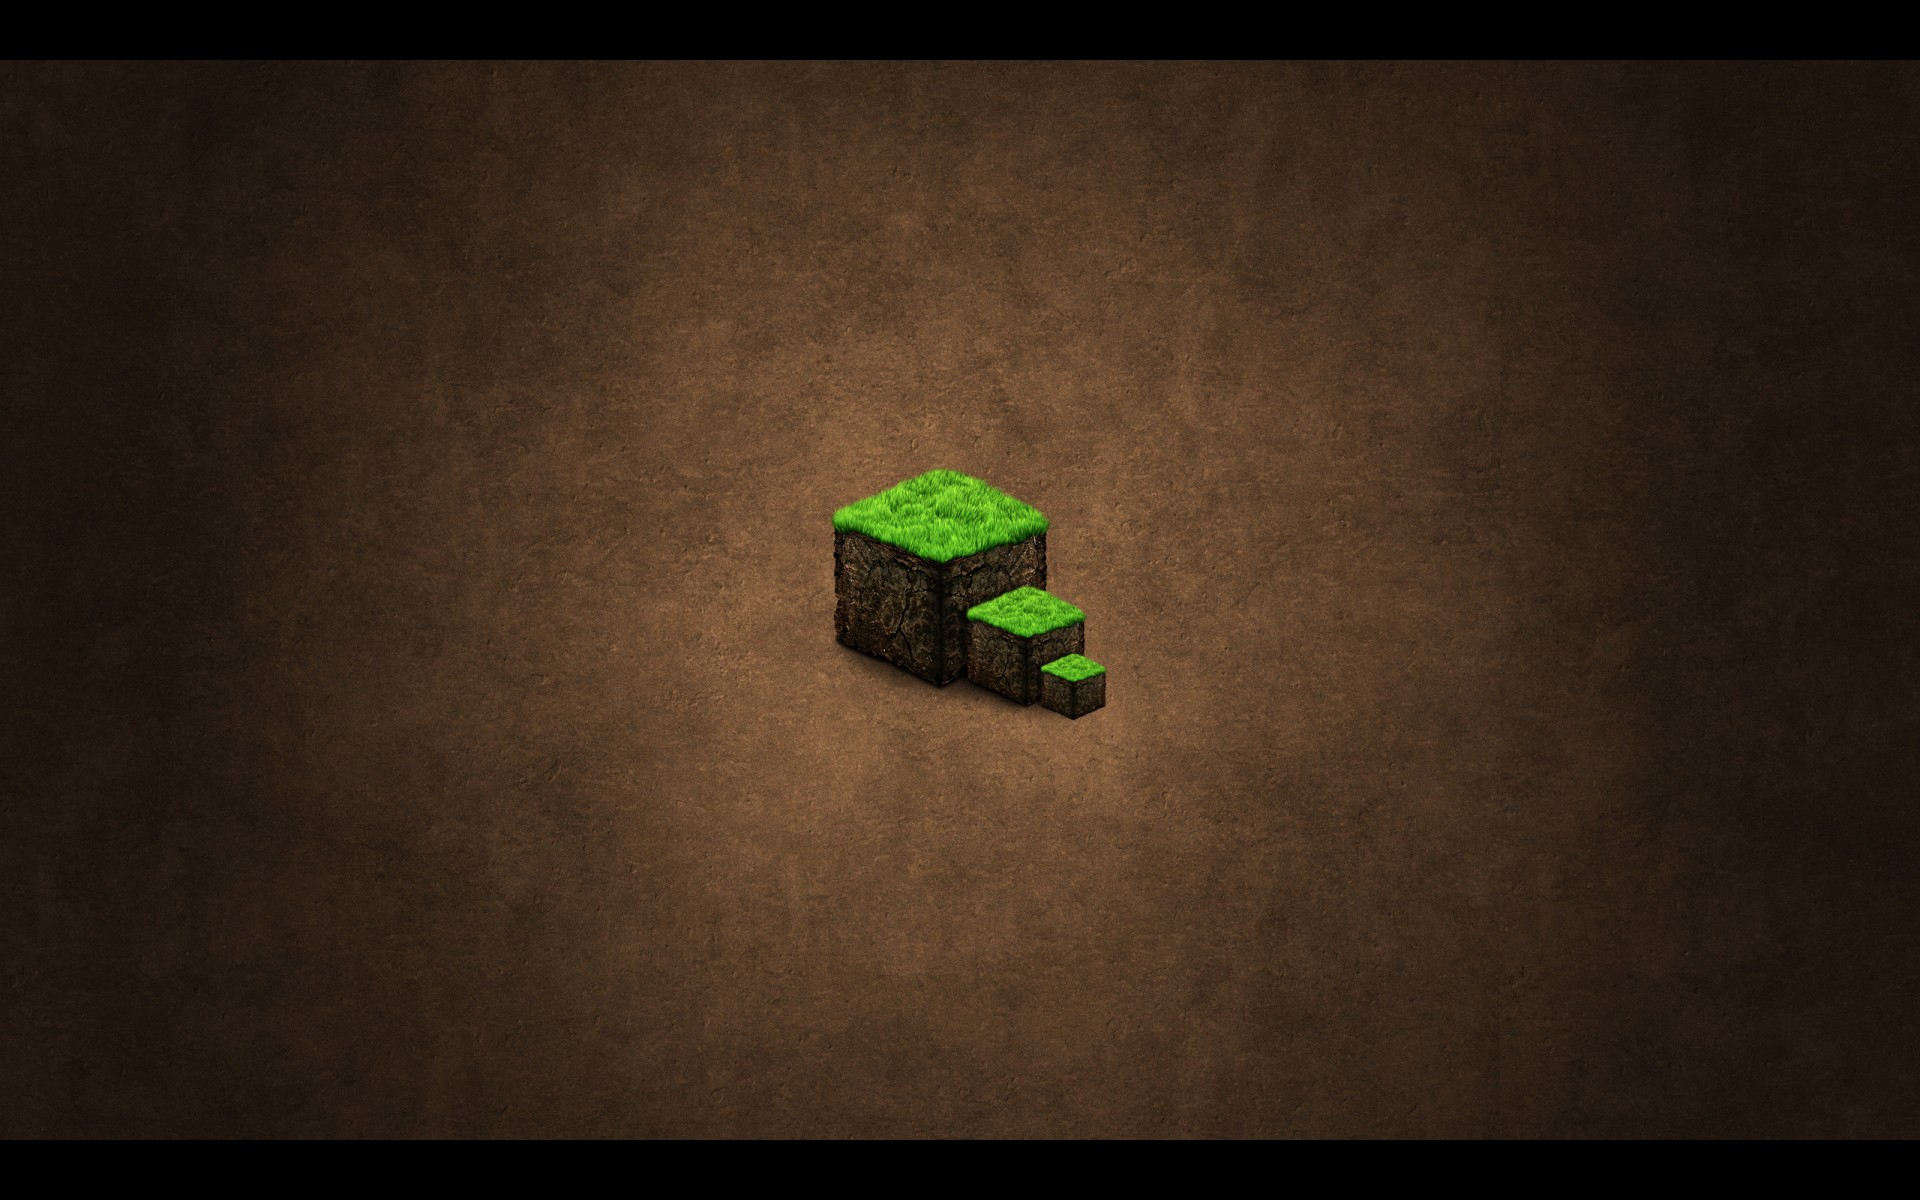 Cube Minecraft Desktop Lb Photo Realism Minecraft Lb Photo HD 1920x1200